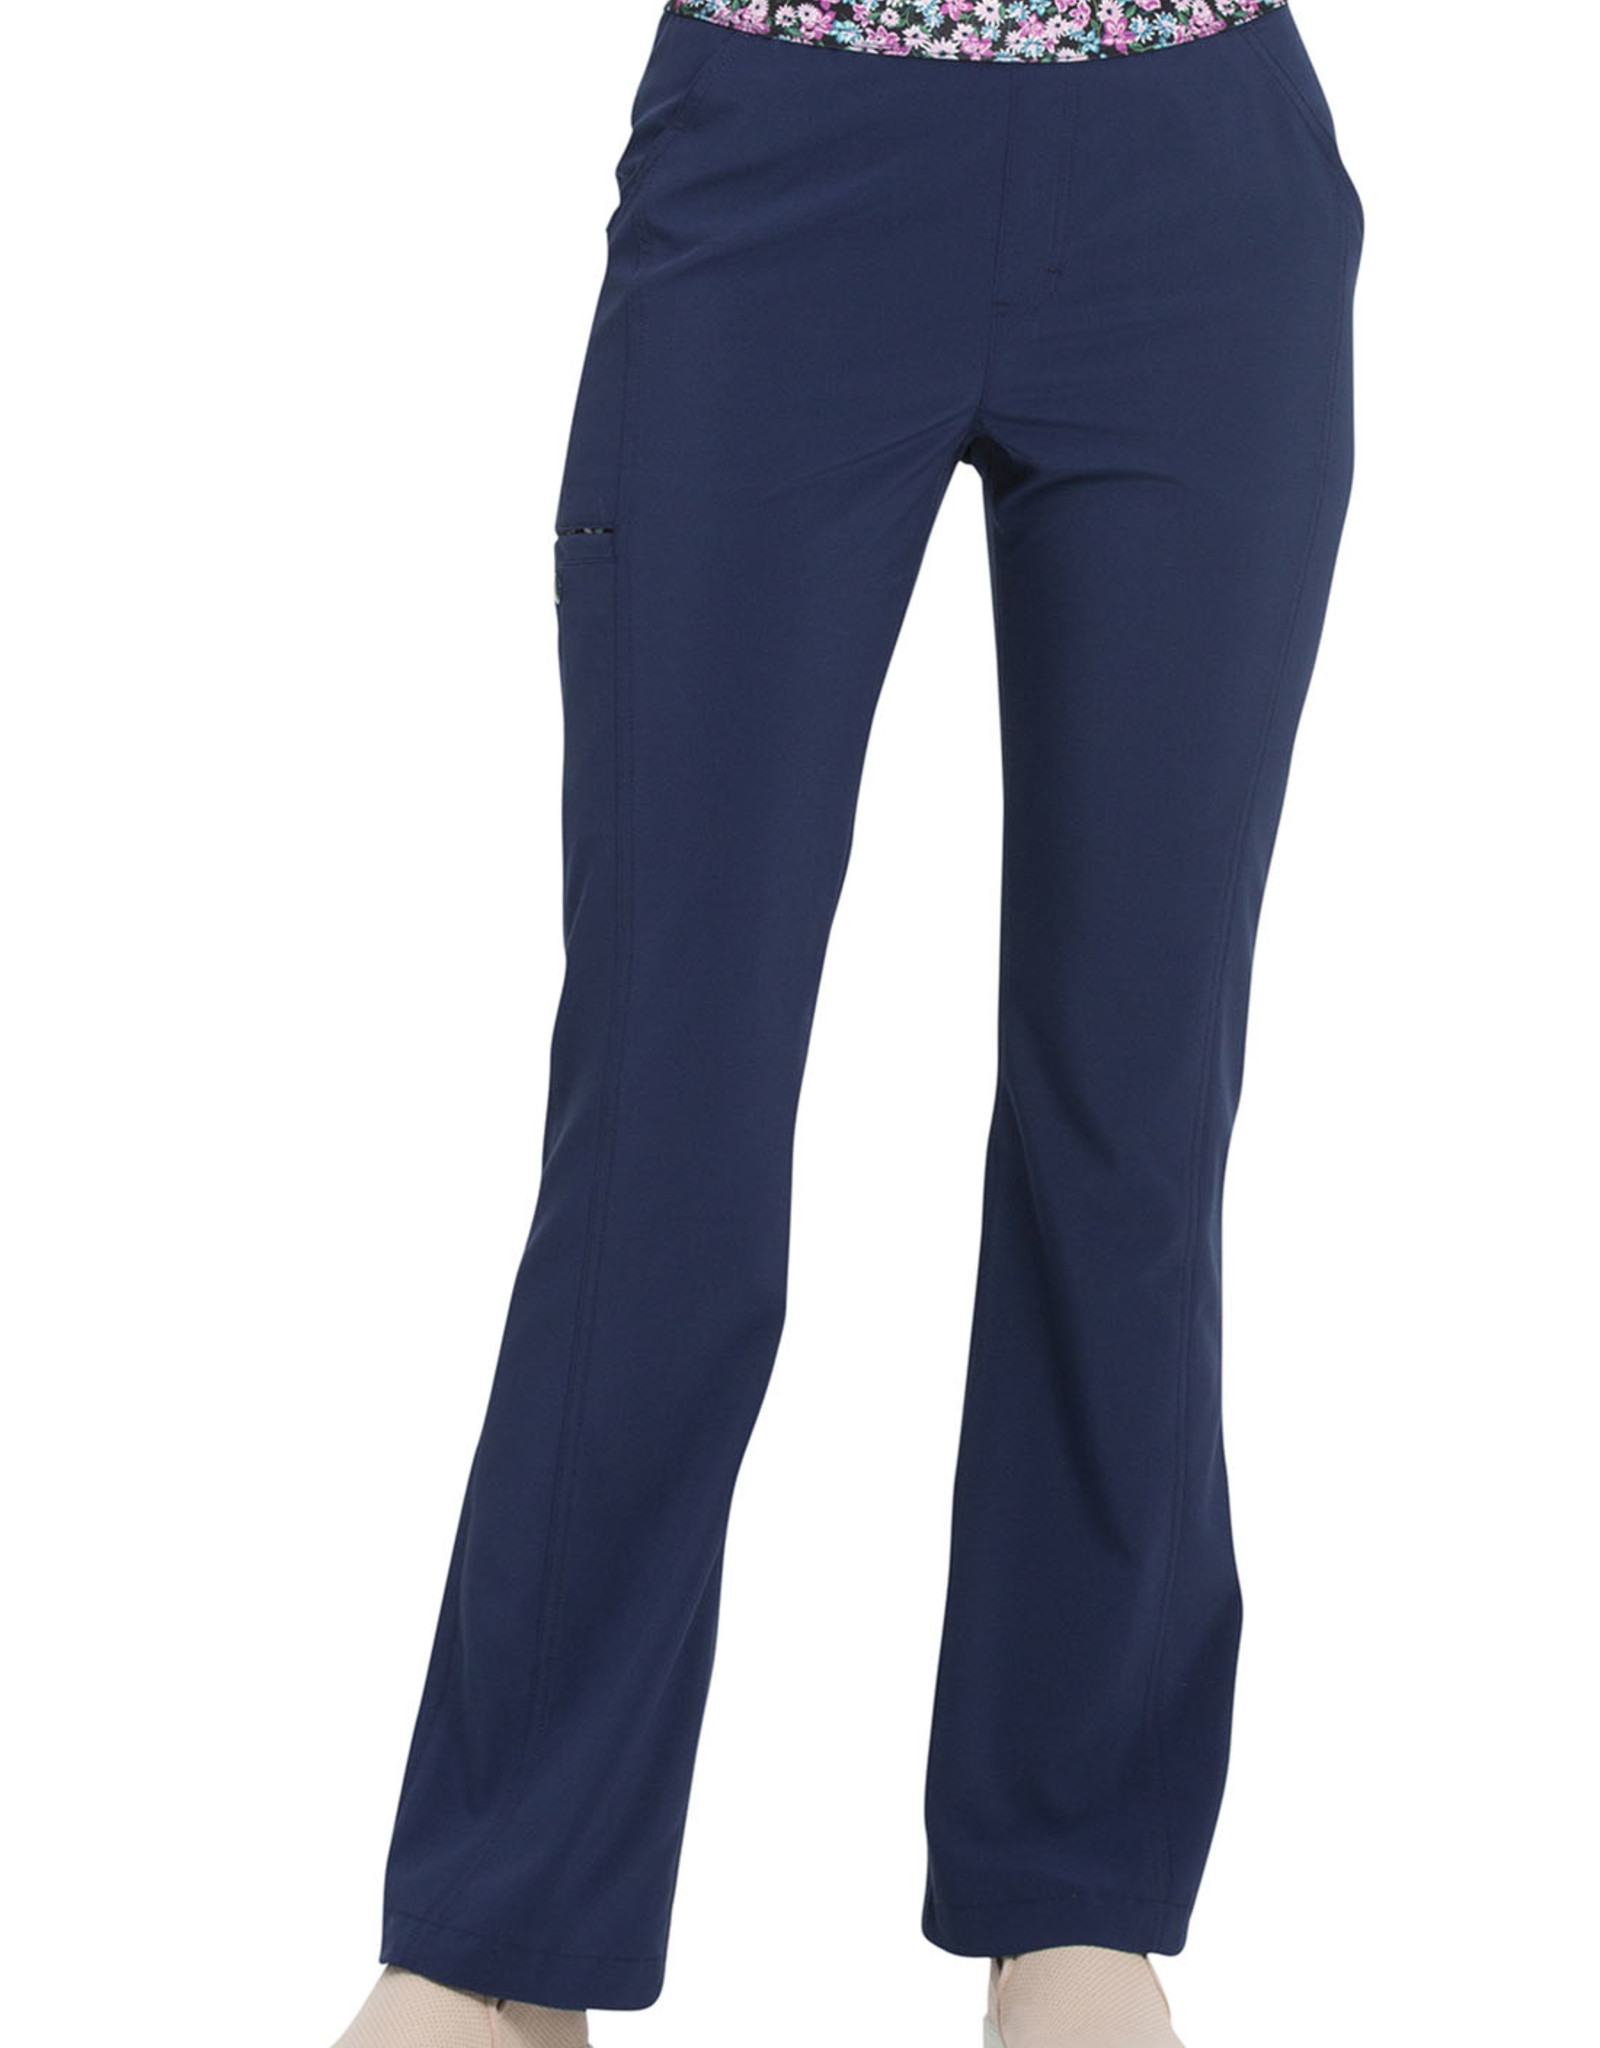 HeartSoul Natural Rise Moderate Flare Pant - HS085 Flare Pant